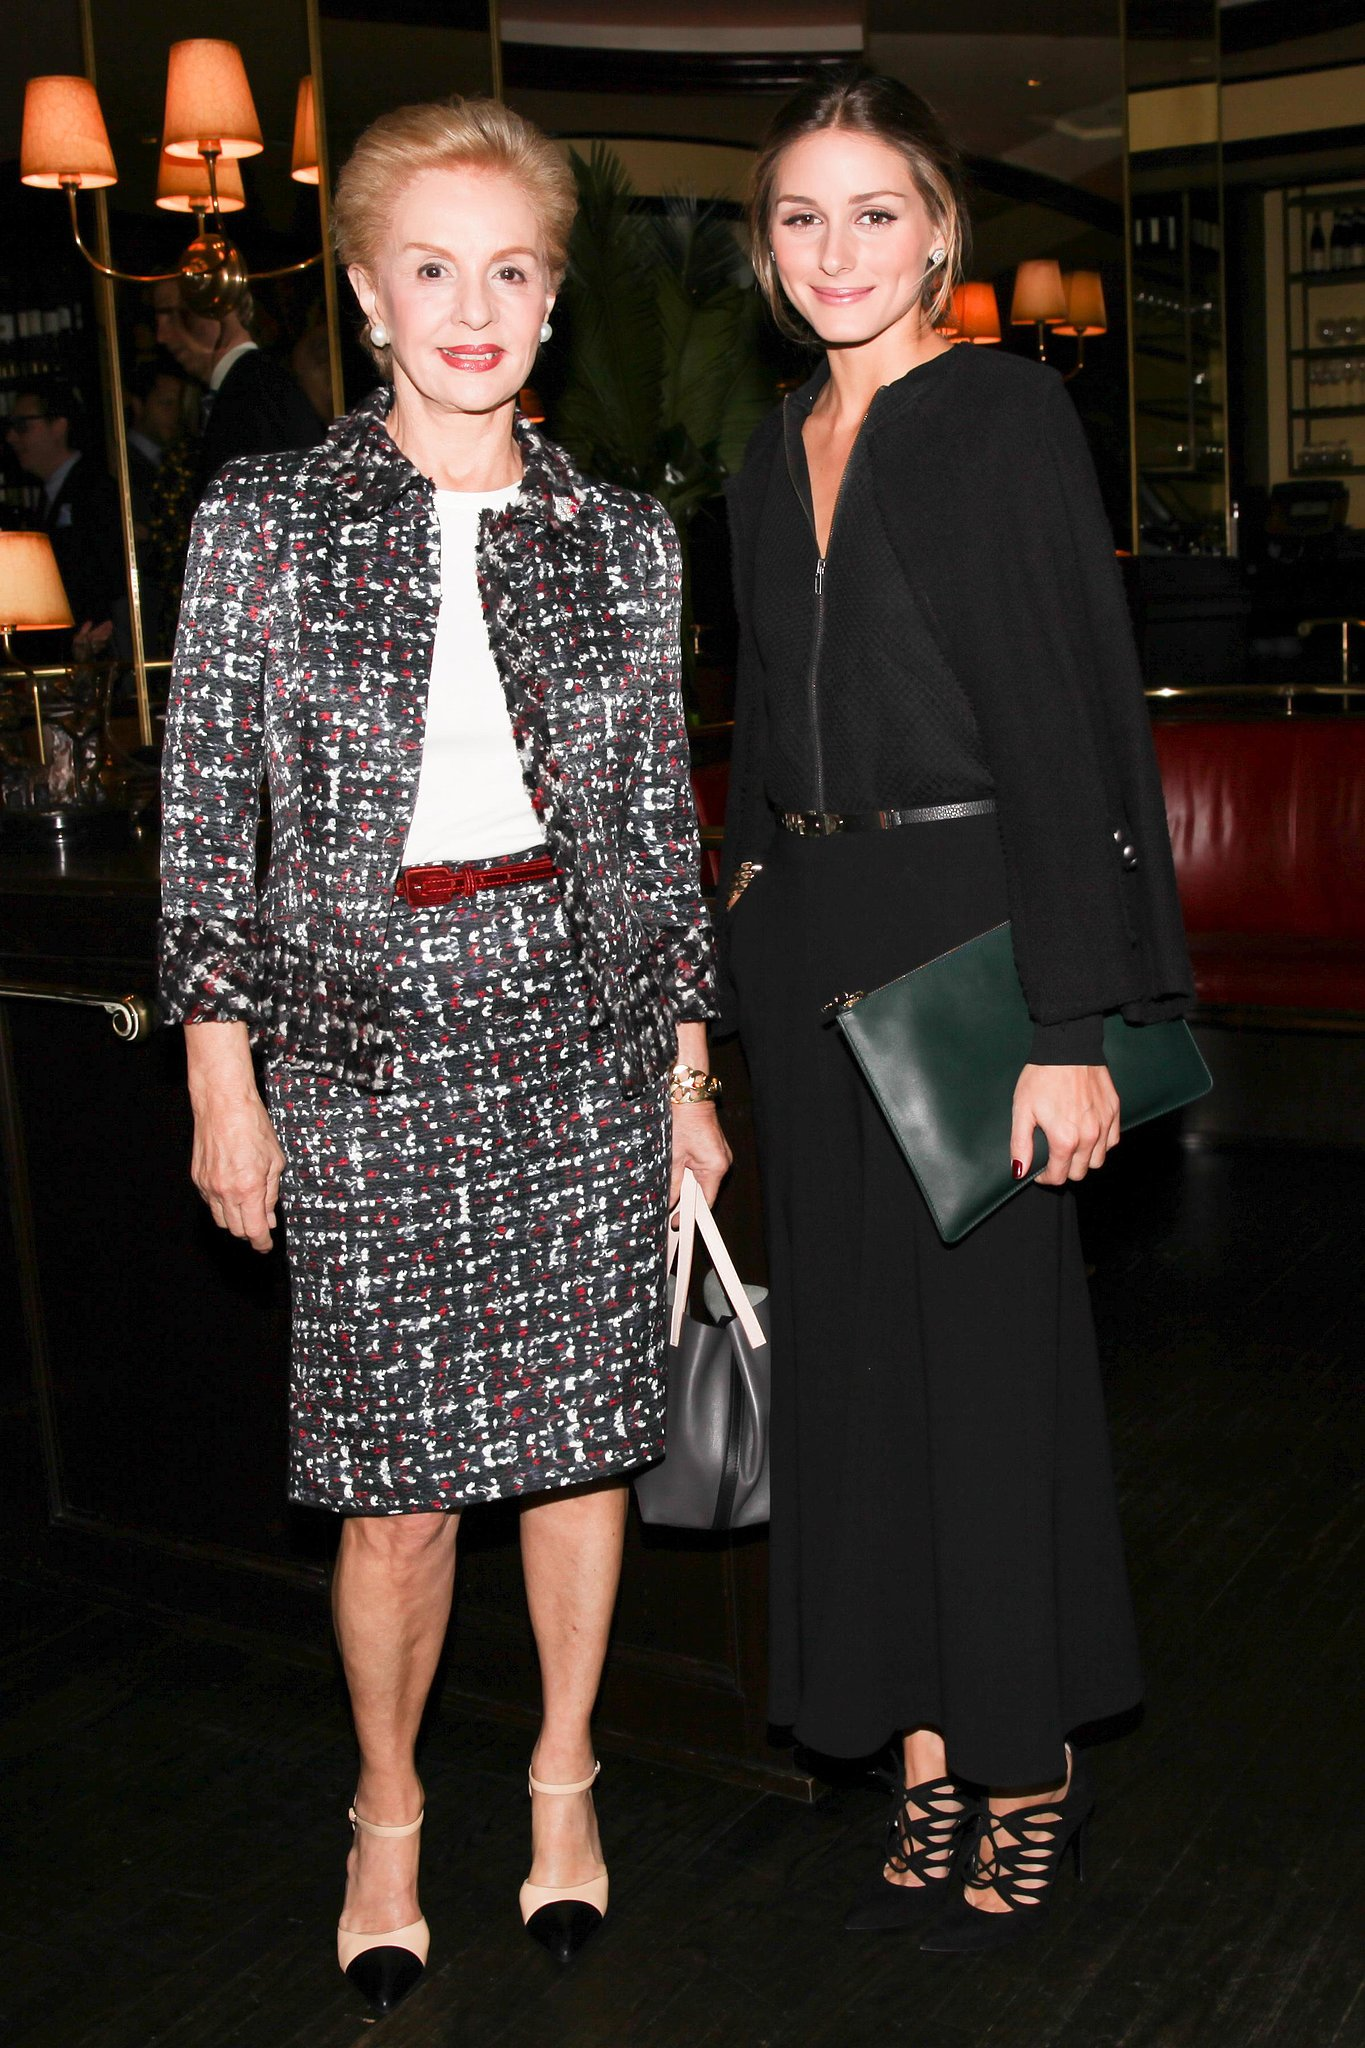 Carolina Herrera and Olivia Palermo made a chic duo at Vanity Fair's NYC dinner.